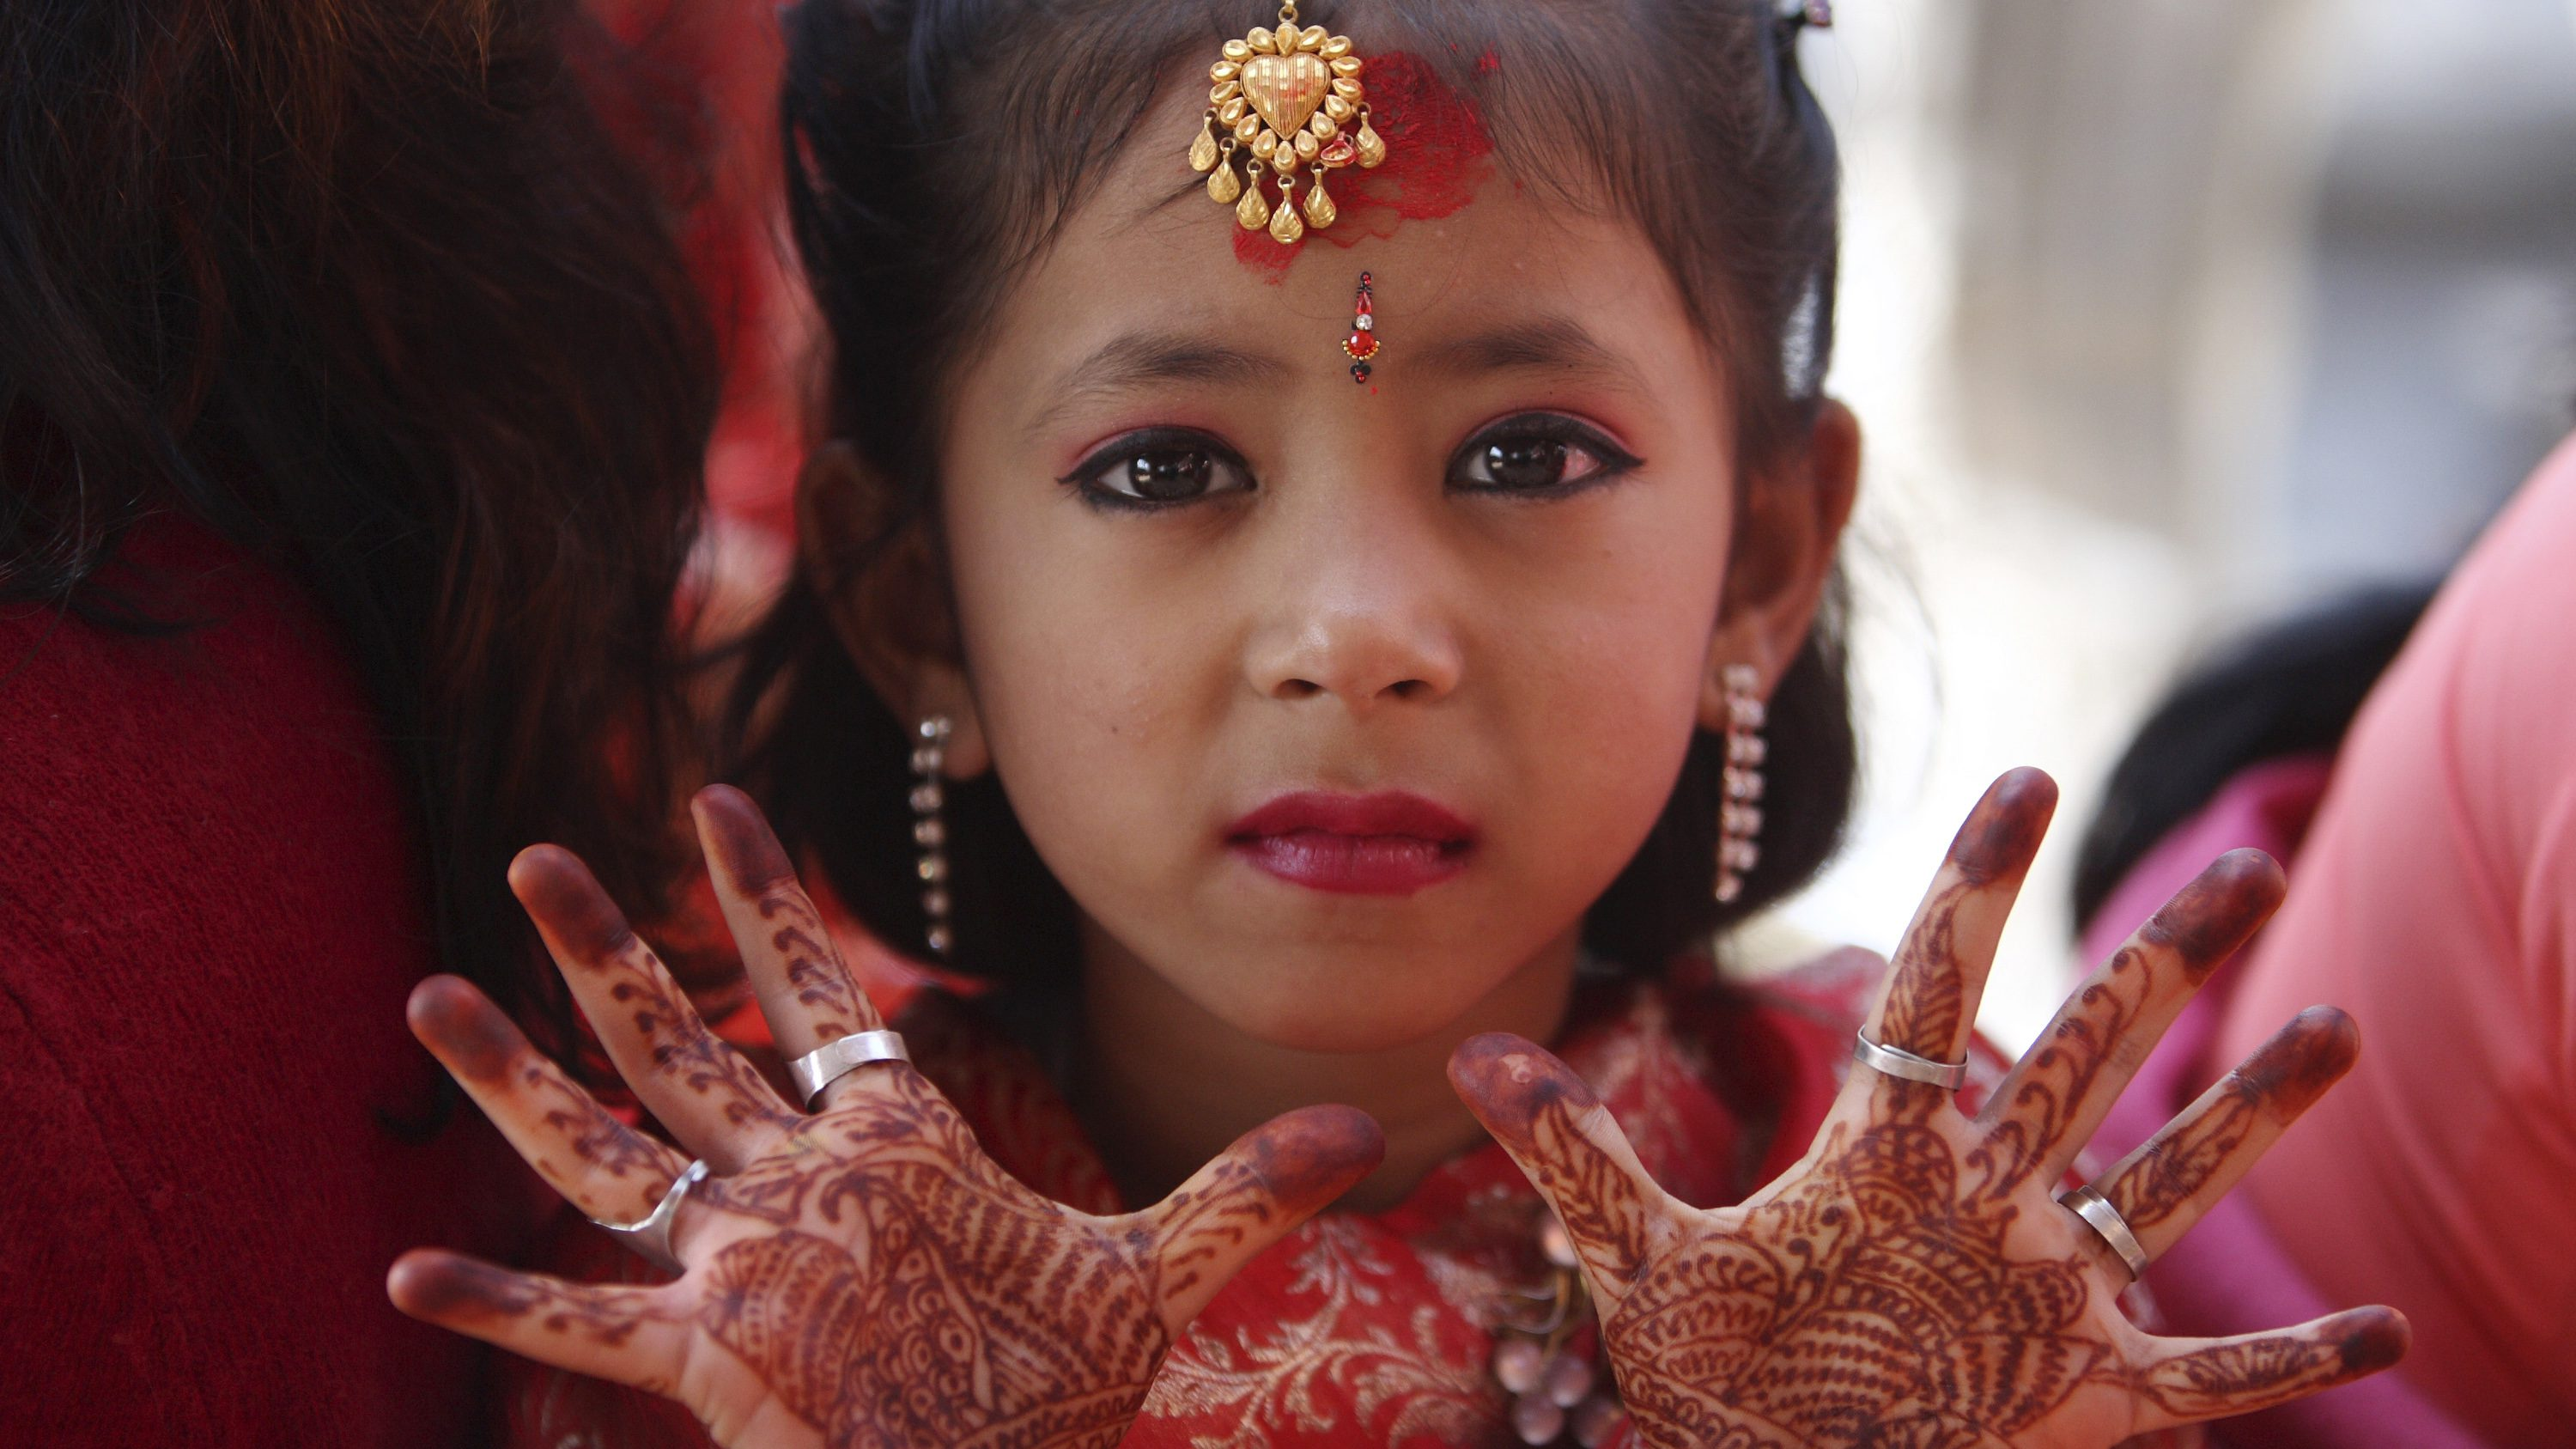 Child marriage is allowed in more than 100 countries